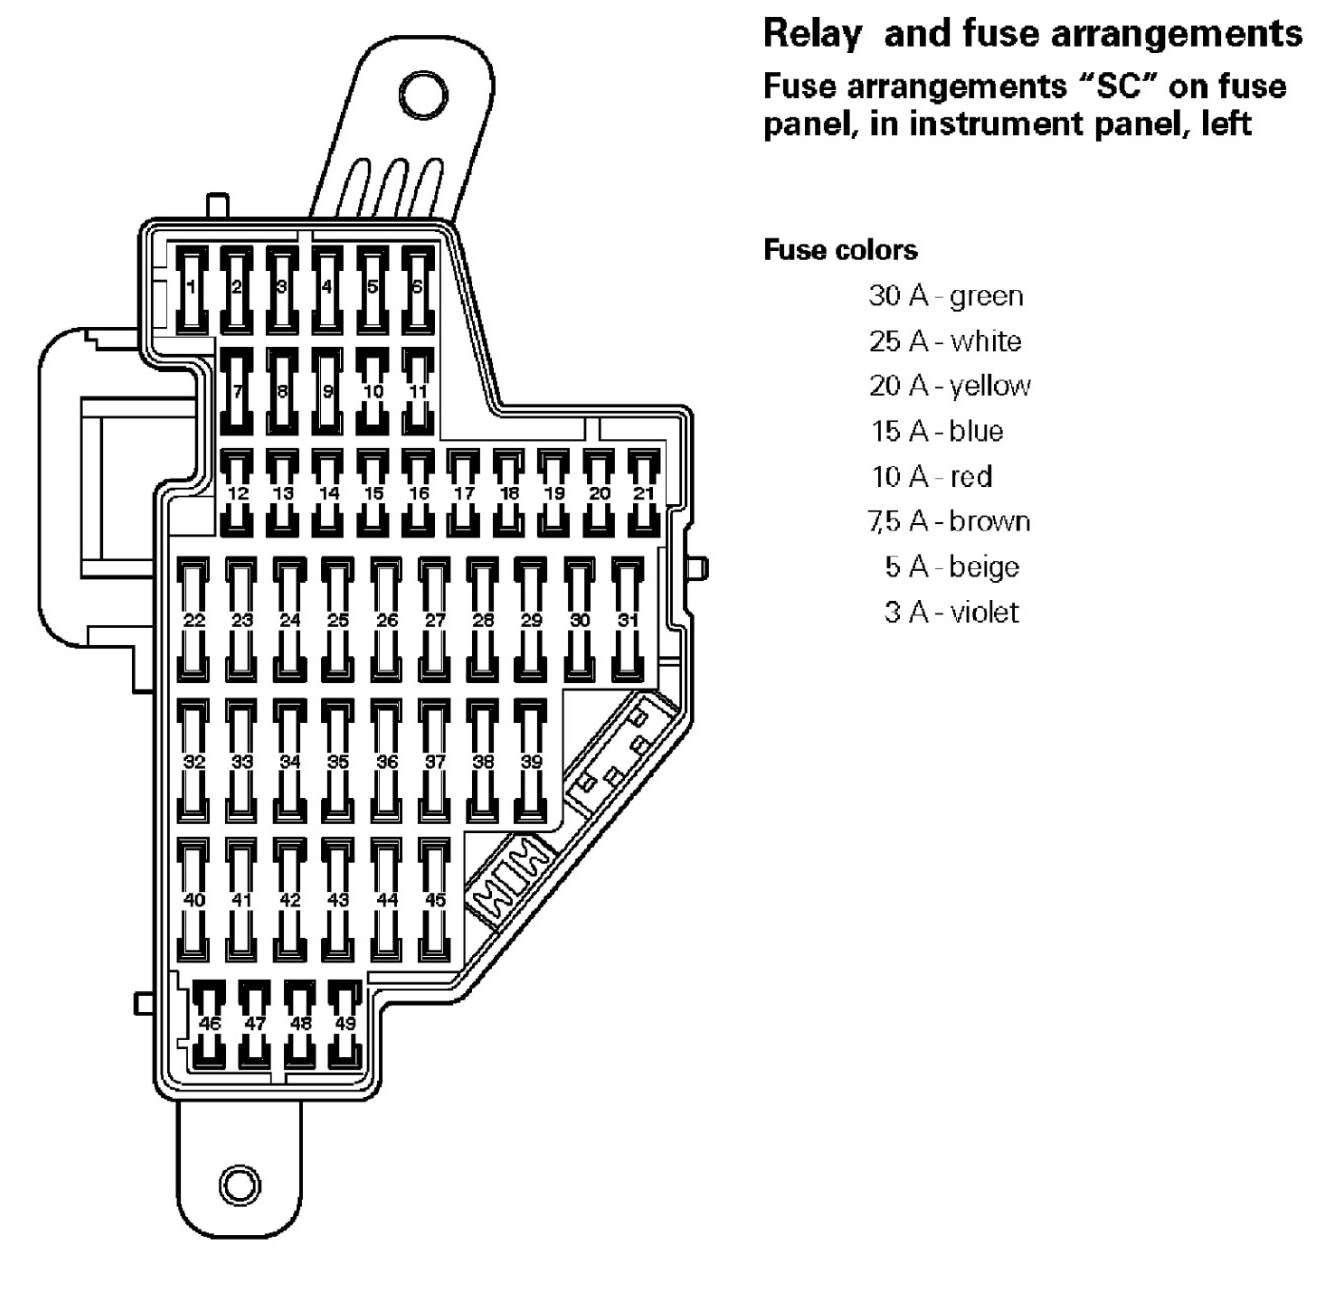 Volkswagen 2006 Fuse Box Simple Electrical Wiring Diagram Touareg Location Jetta Headlight Vw